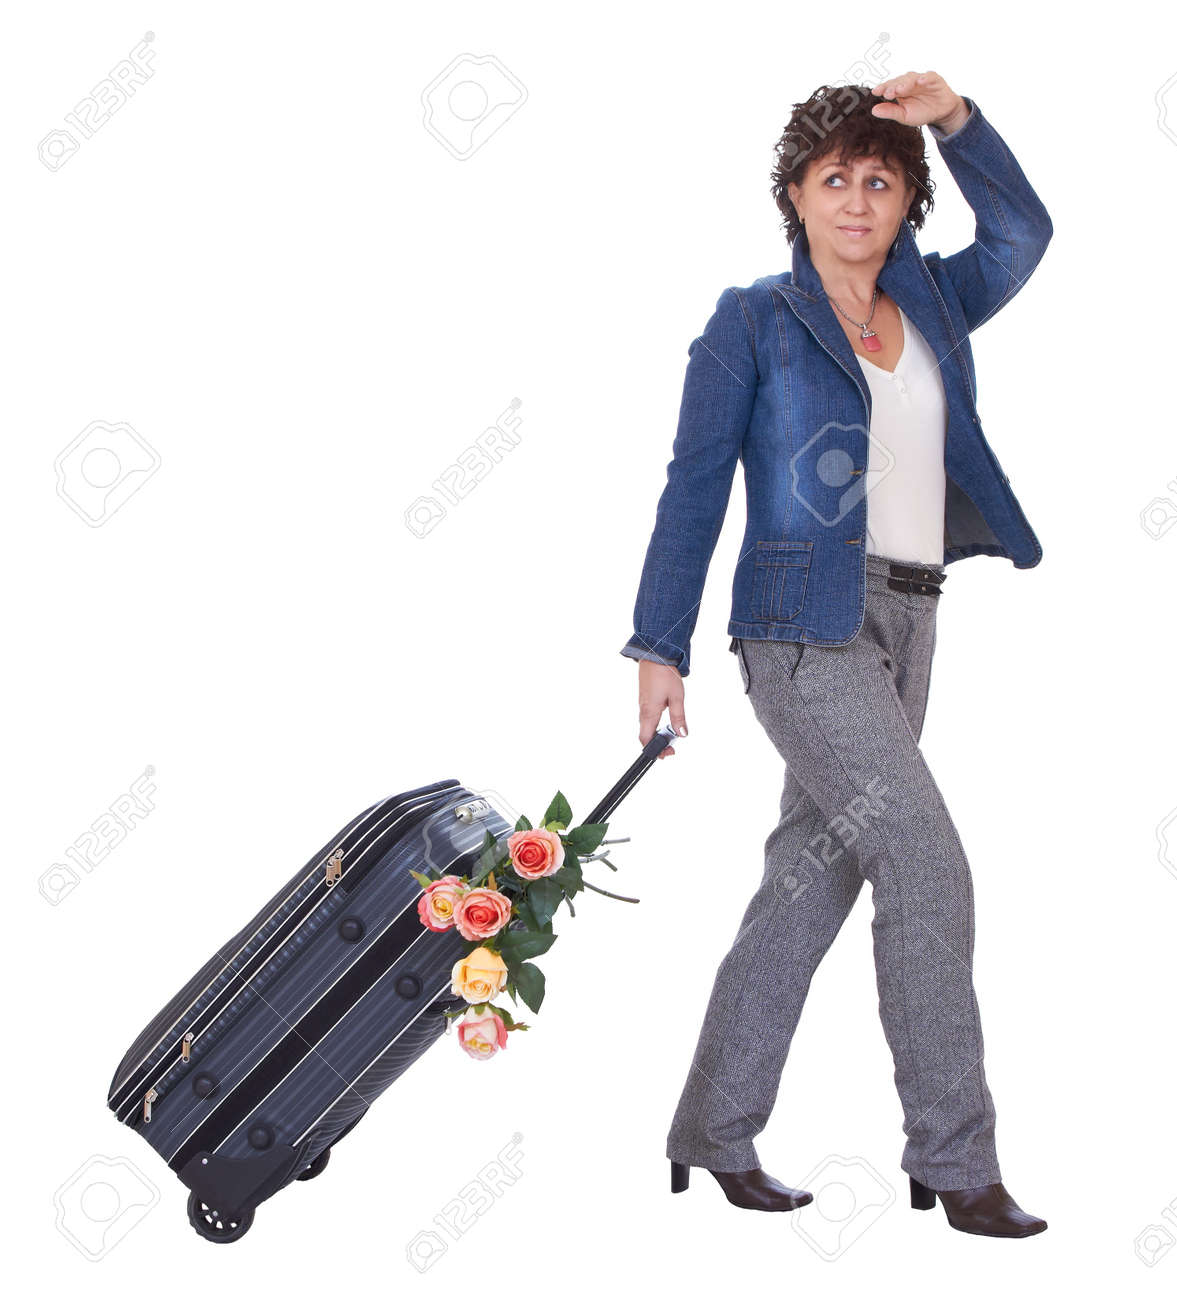 Cute Adult Woman With Luggage Is Waiting A Train Stock Photo ...